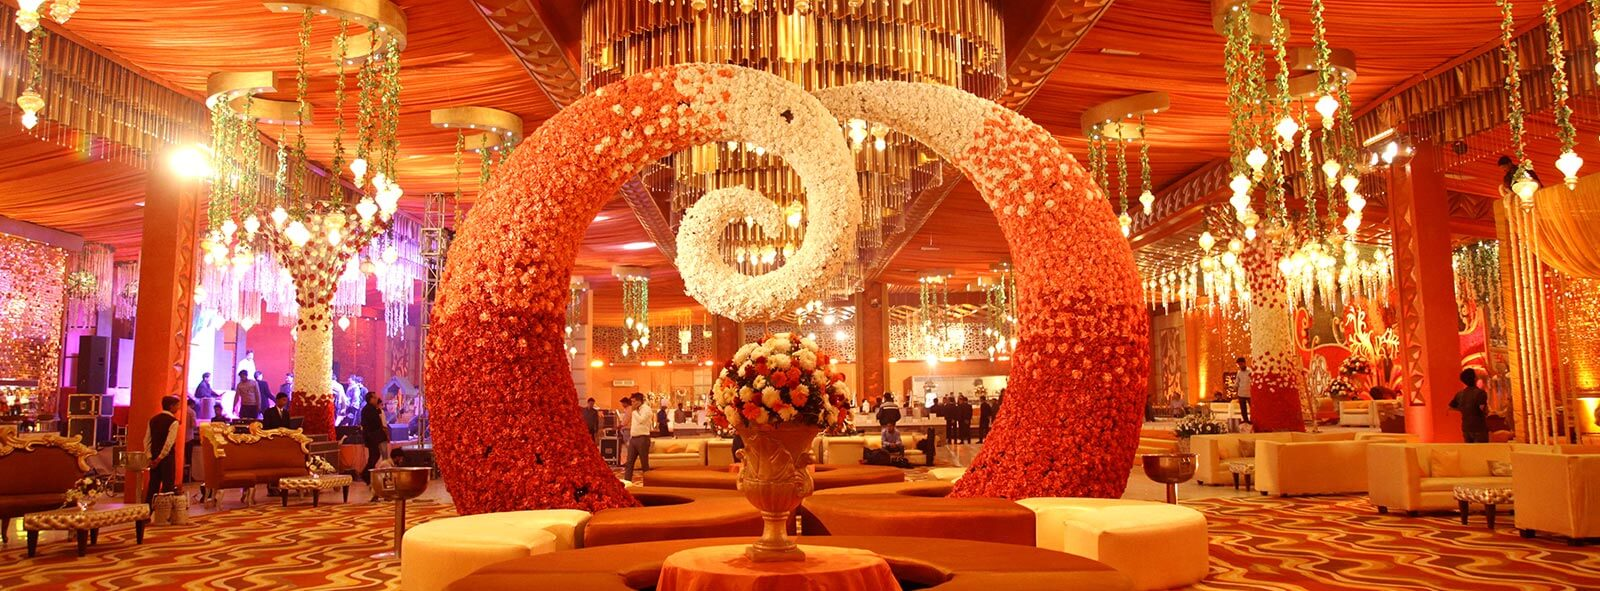 Banquet halls in delhi for marriage fnp gardens banquet halls in delhi for marriage junglespirit Choice Image